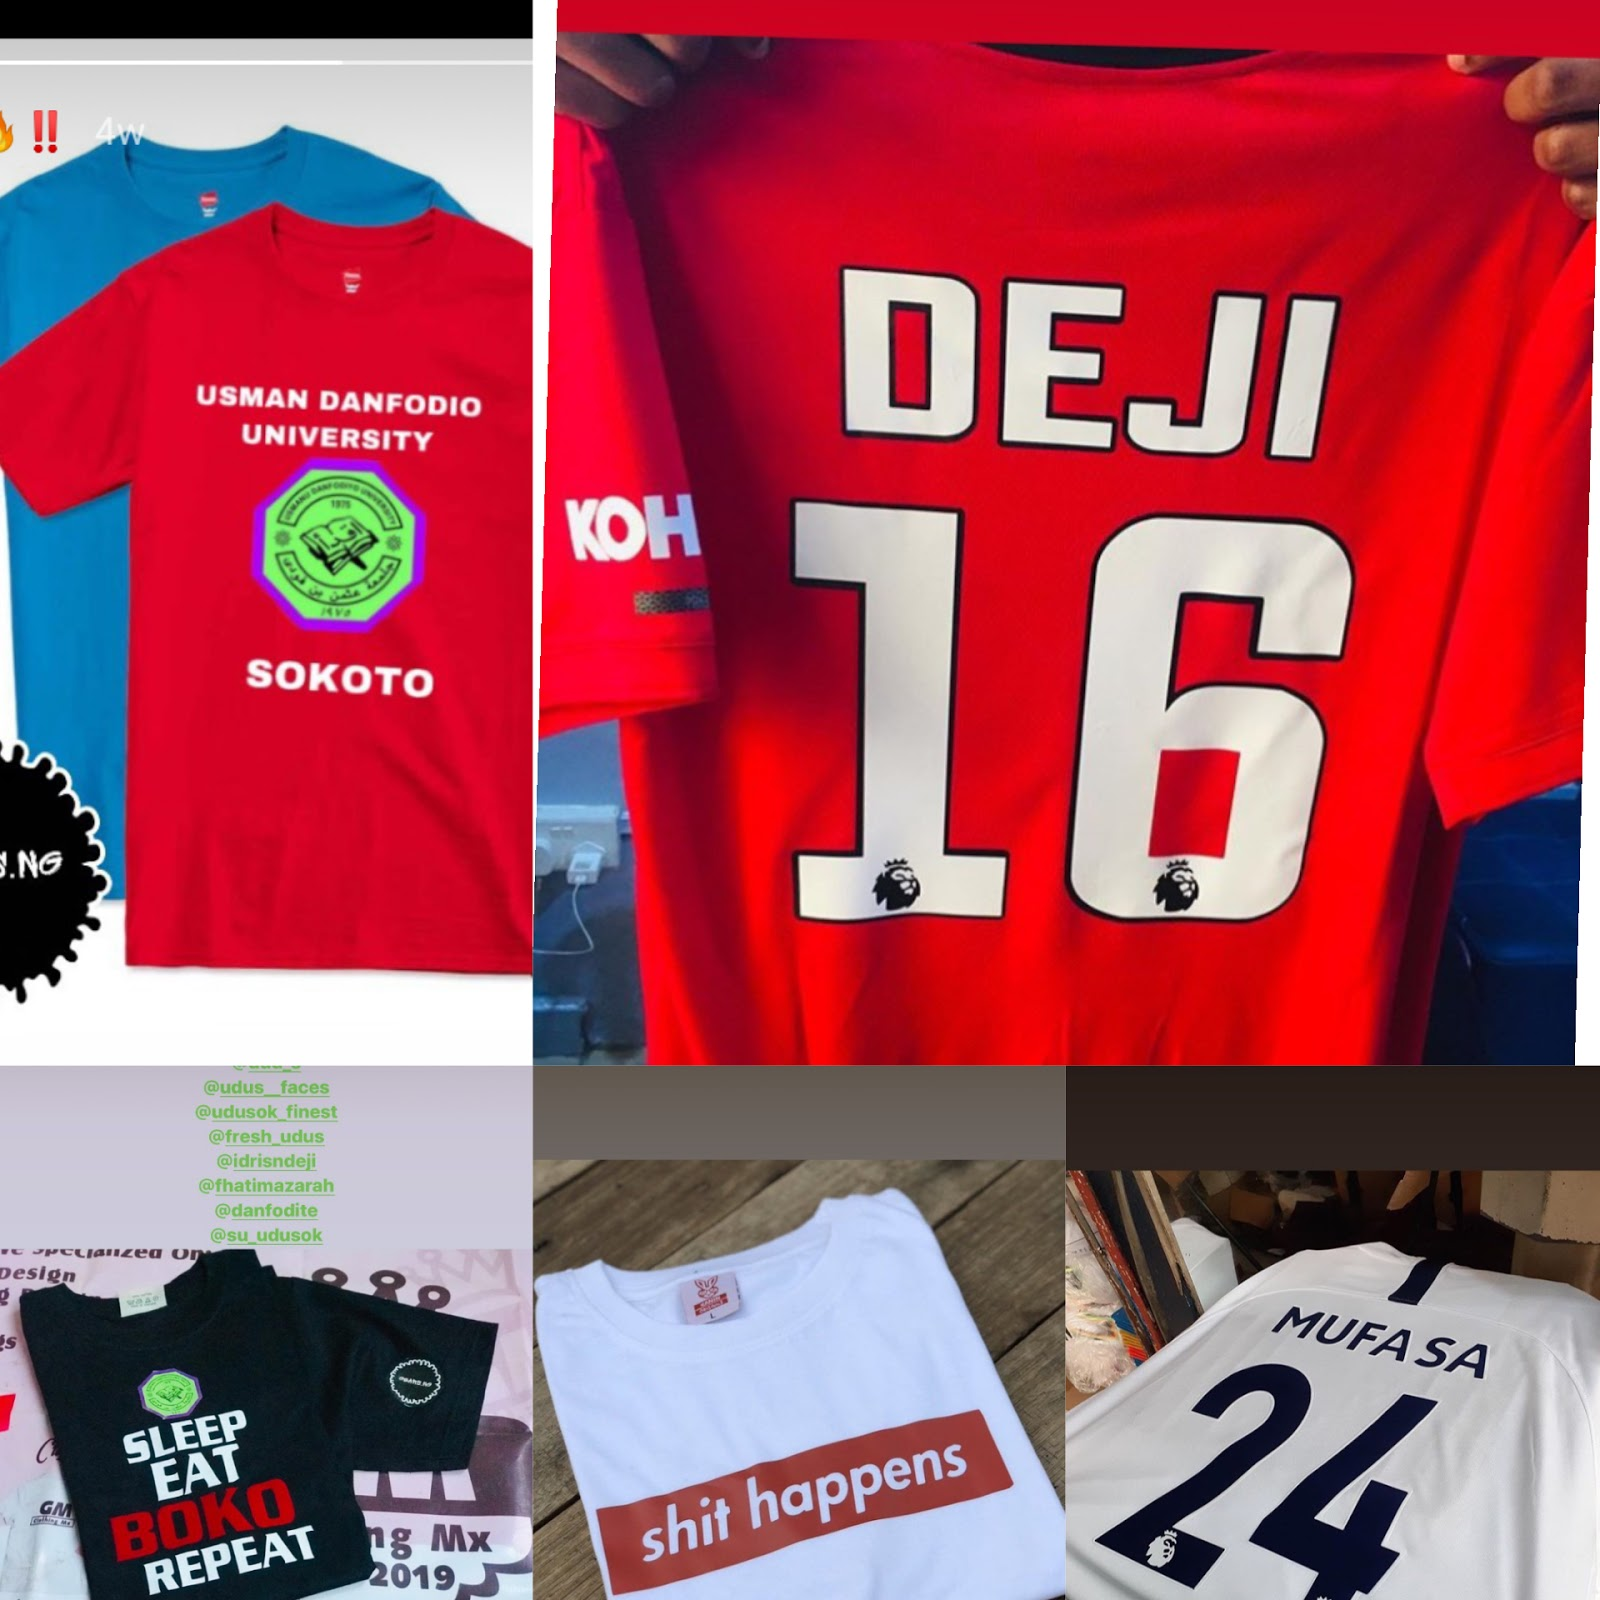 [Clothing] Gears-Ng: We make clothes, we customize (photos available) #Arewapublisize